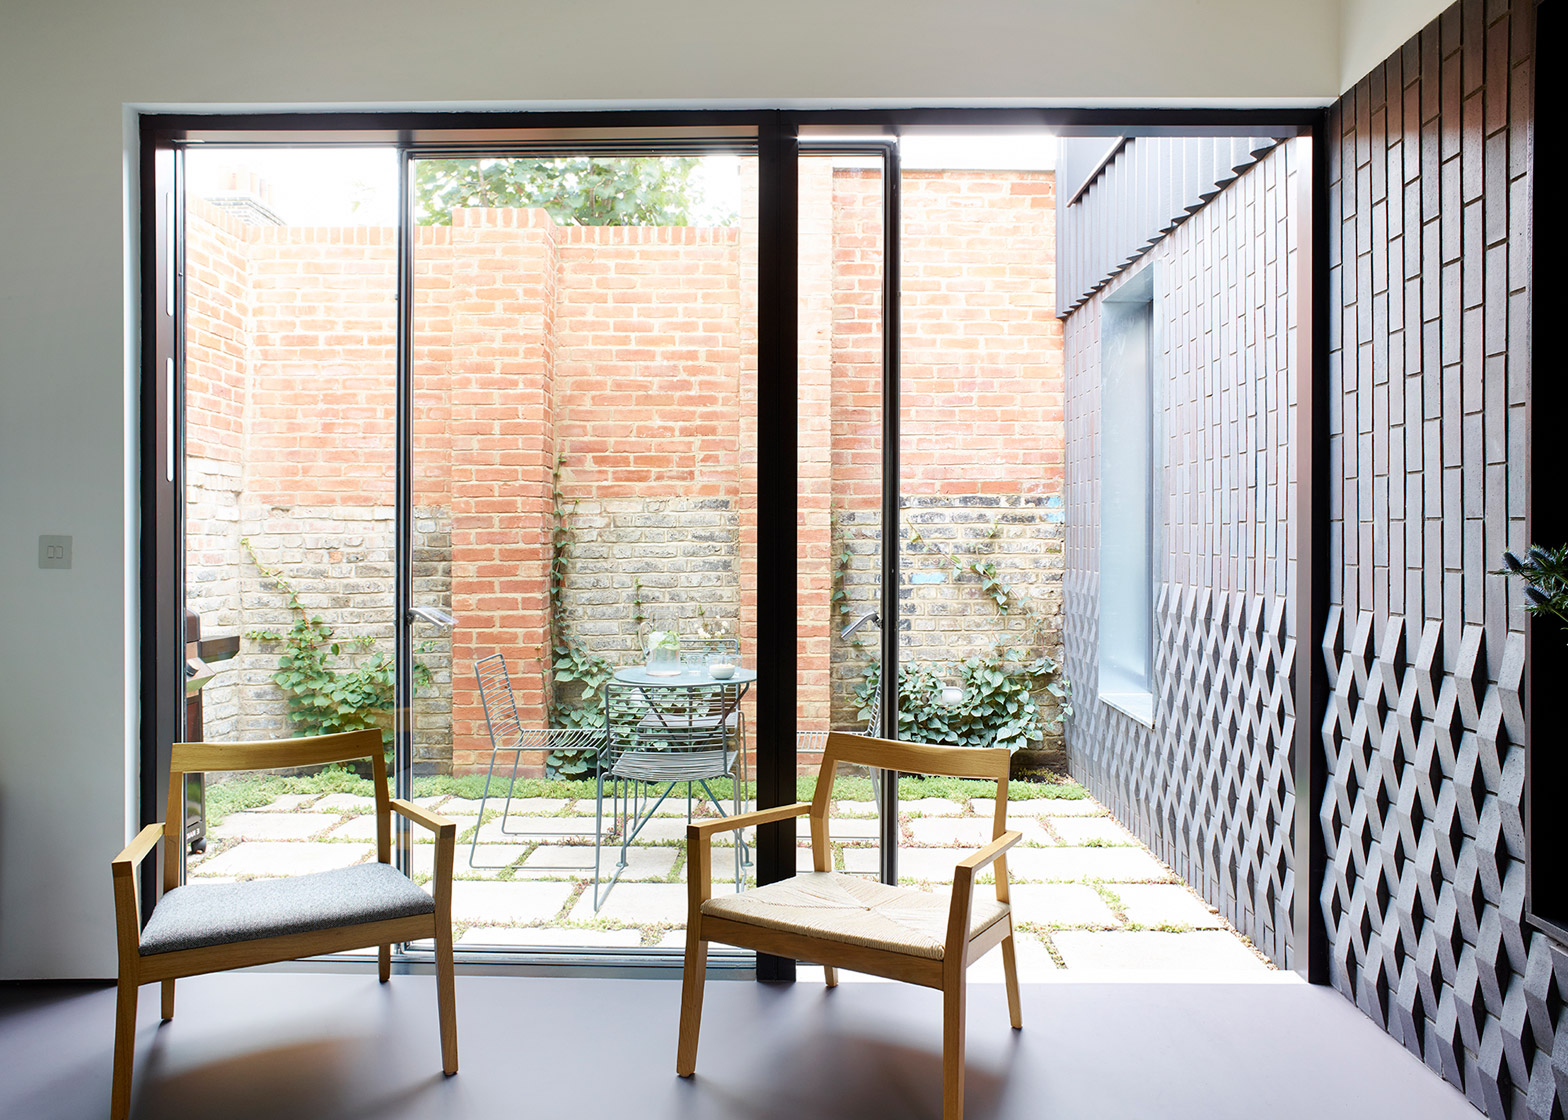 dallas pierce quintero's small london home arranged around courtyards